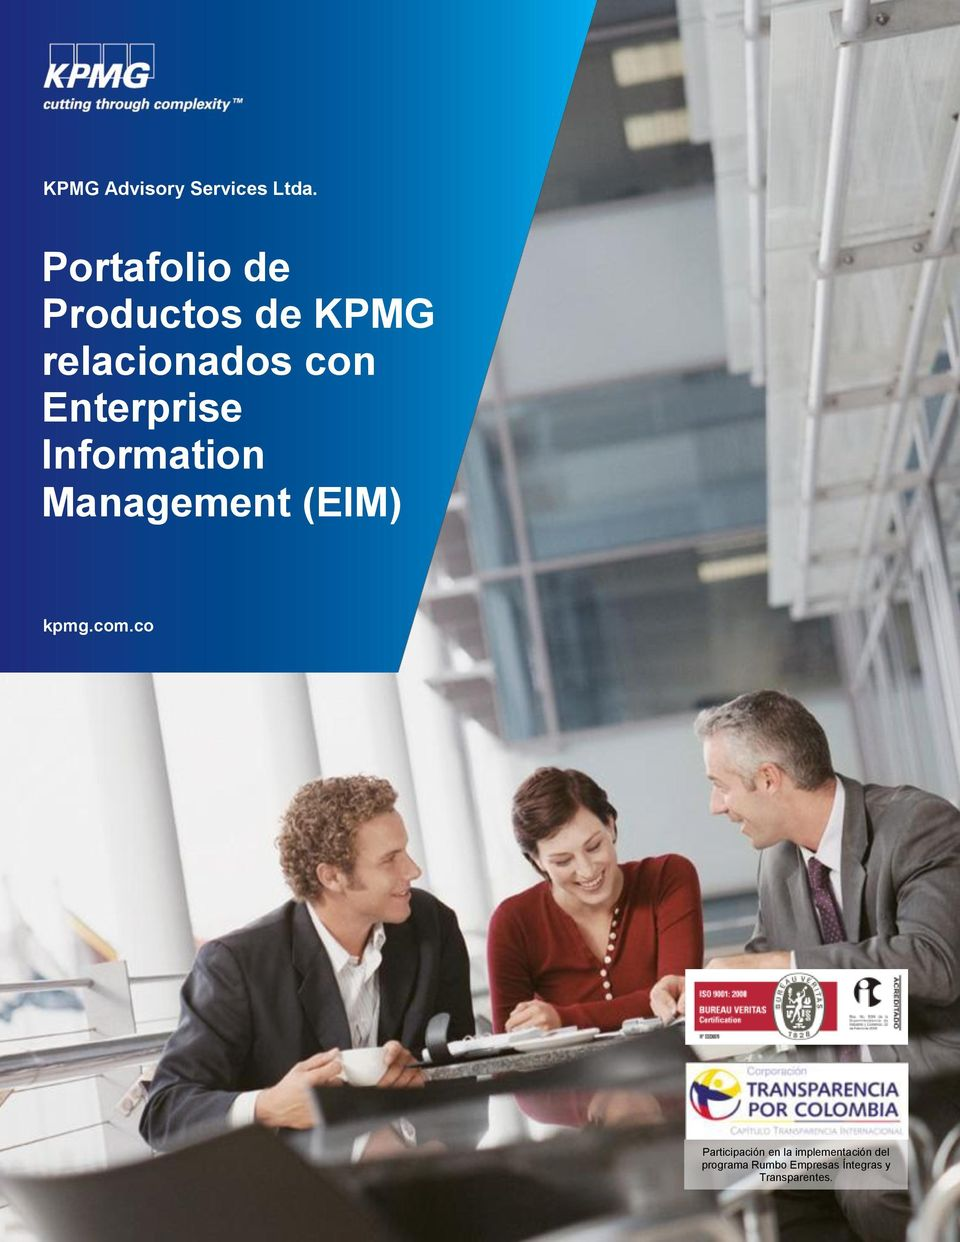 Enterprise Information Management (EIM) kpmg.com.